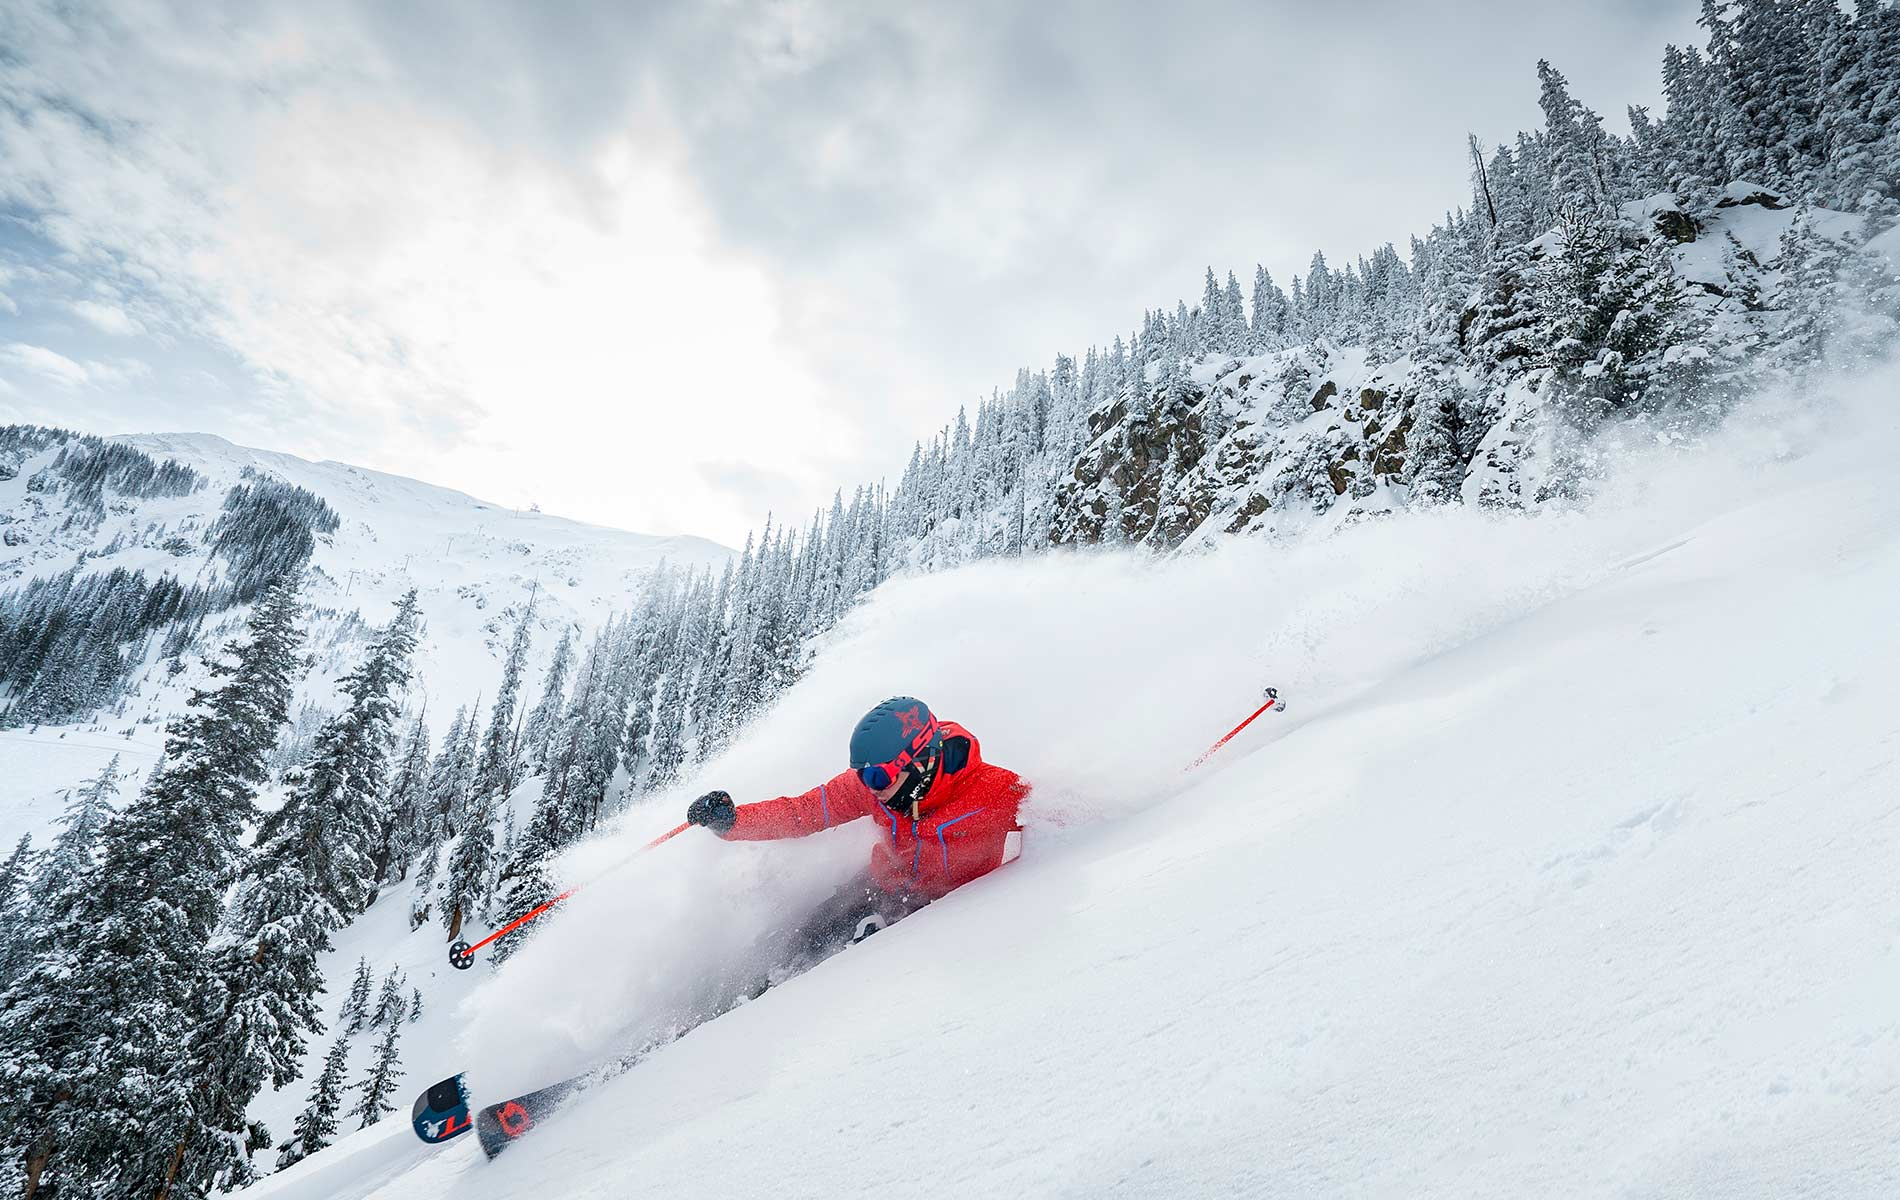 Taos Ski Valley is the perfect place for adventure lovers or those looking for a relaxing day at the spa after time spent on the slopes—you might even make some new friends!